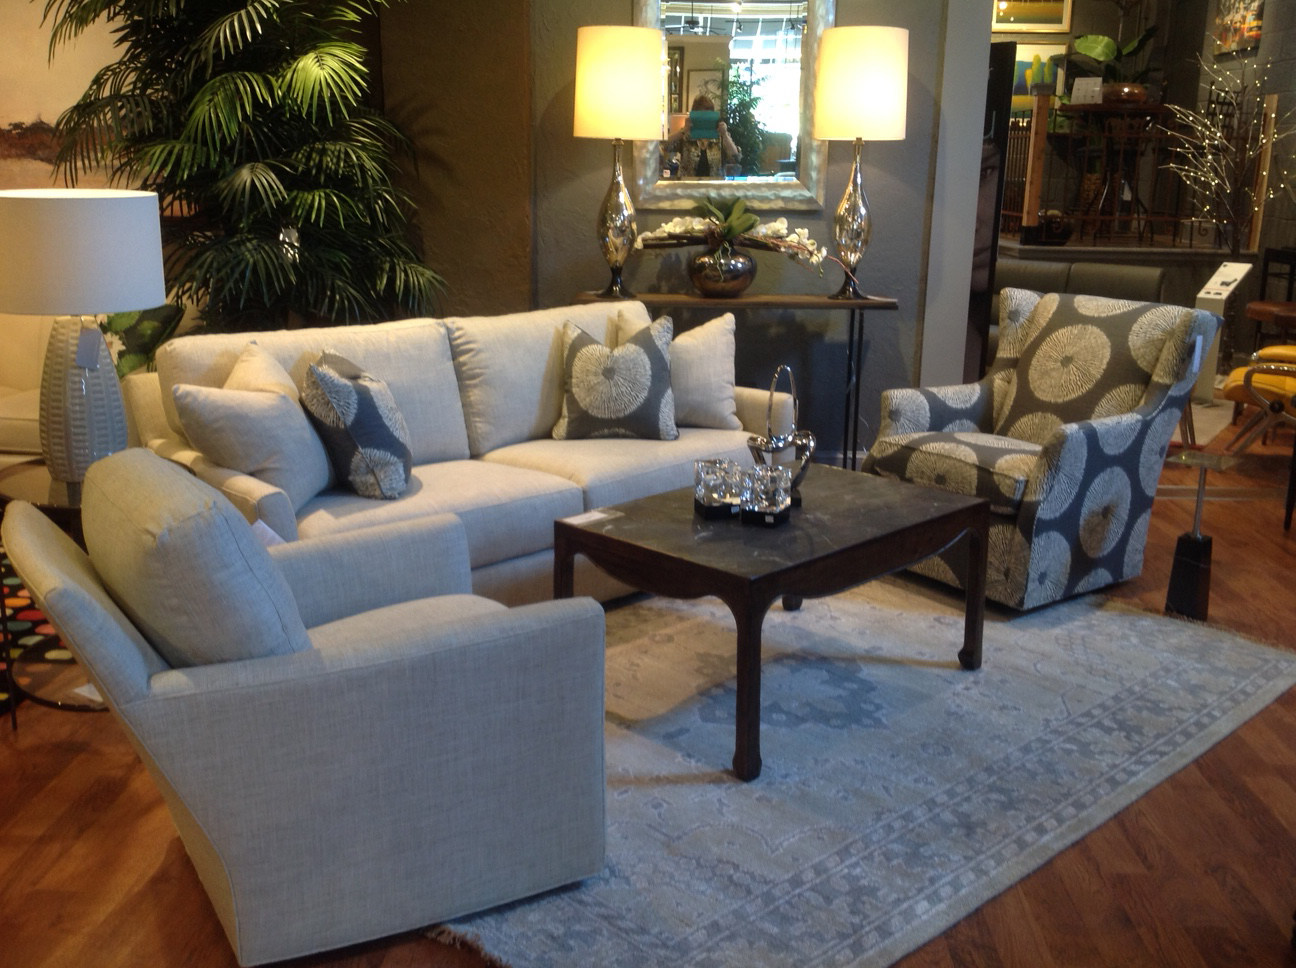 cr laine sofa. SIGN-UP TO RECEIVE EXCLUSIVE SALES, PROMOTIONS \u0026 DESIGN INSIGHTS. Cr Laine Sofa